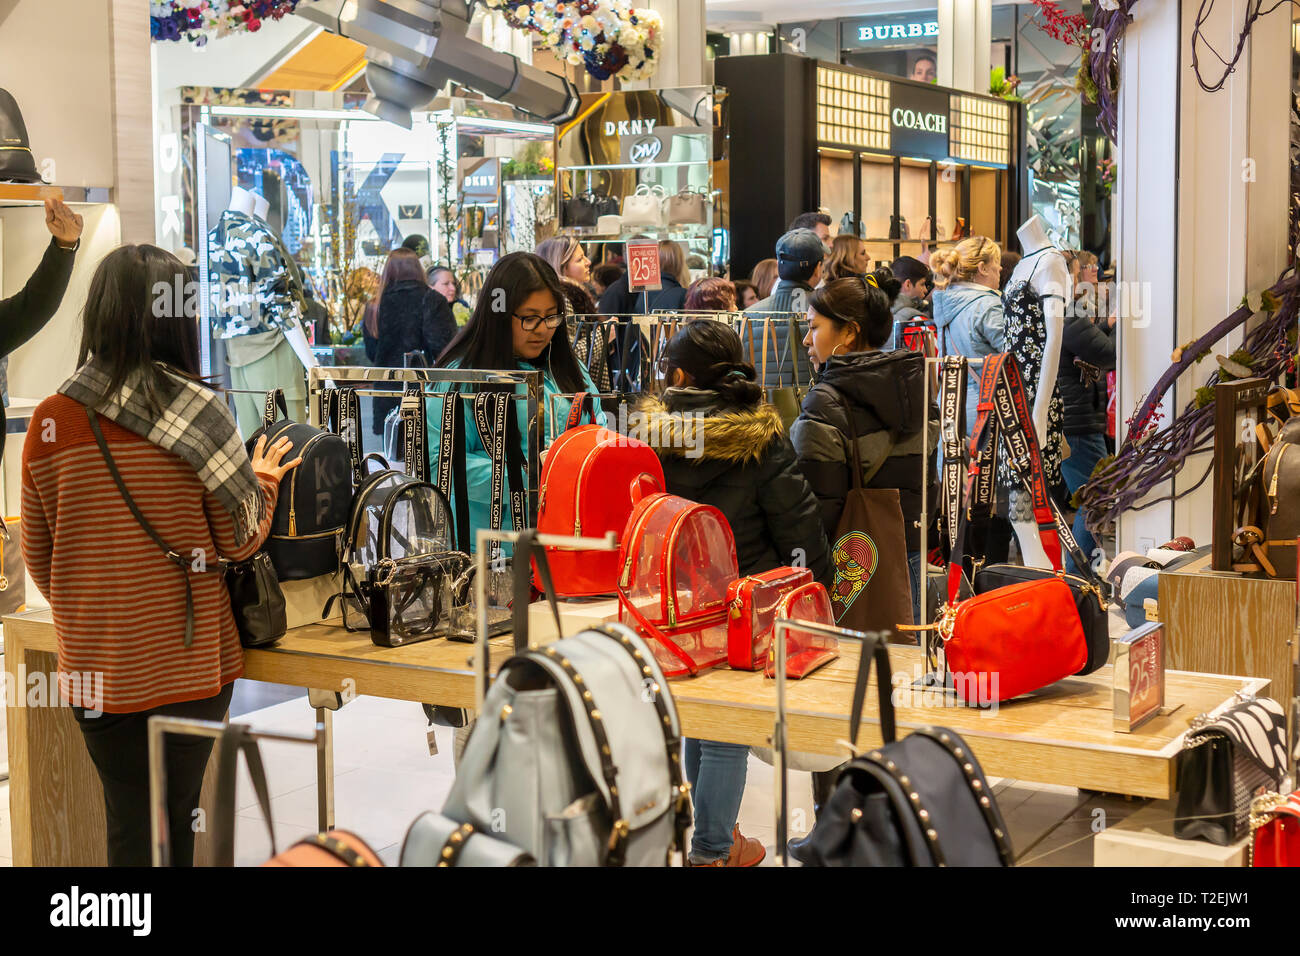 7e7326bf9ddc Michael Kors handbags in Macy s Herald Square department store in New York  on Sunday